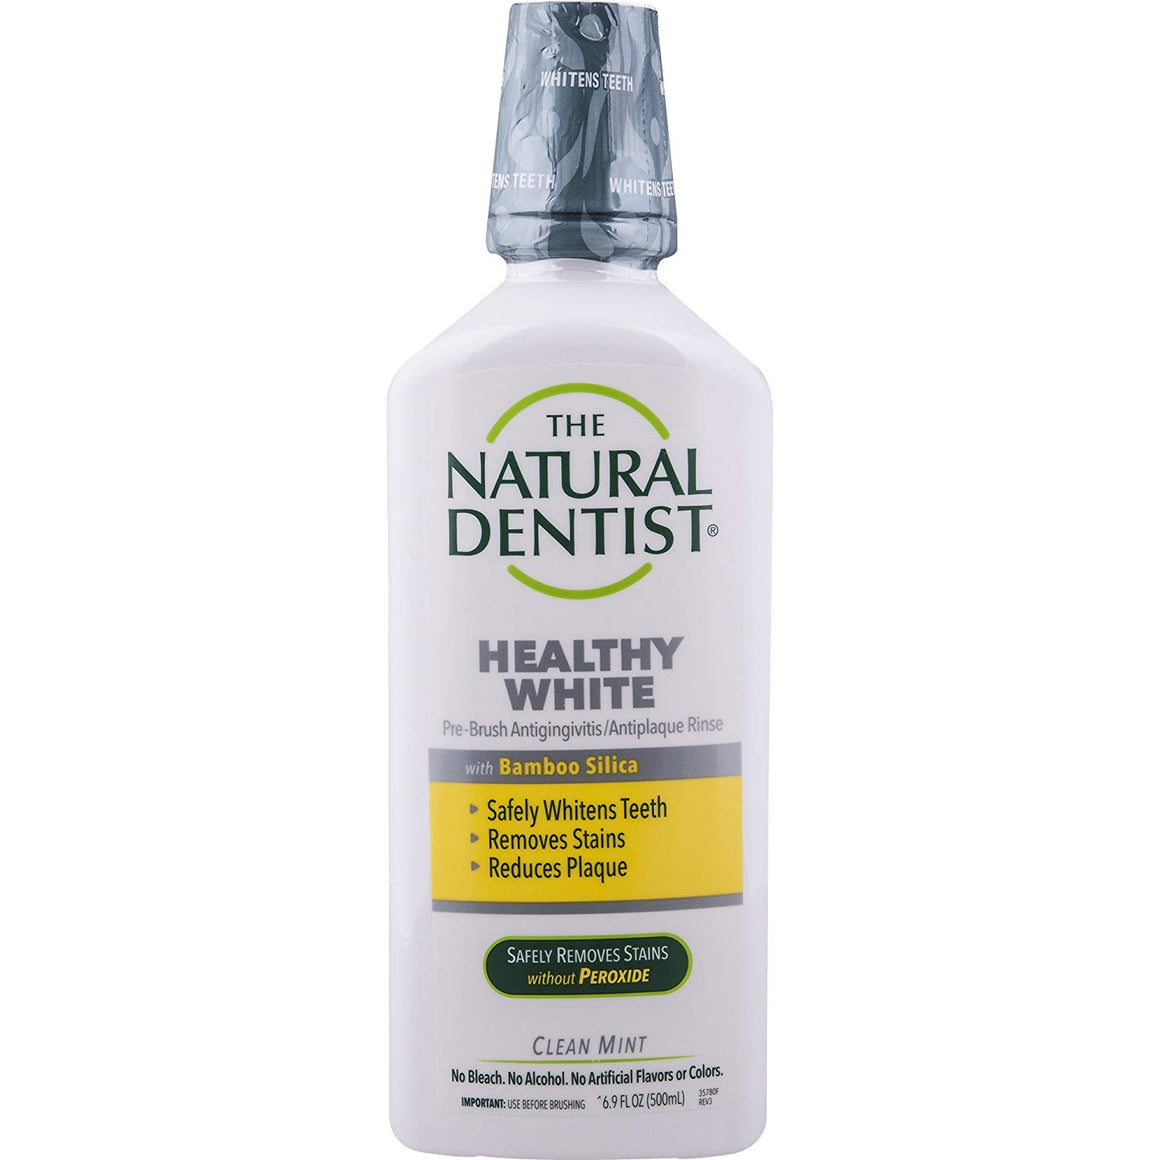 A bottle of Natural Dentist Healthy White Whitening Pre Brush Rinse Clean Mint